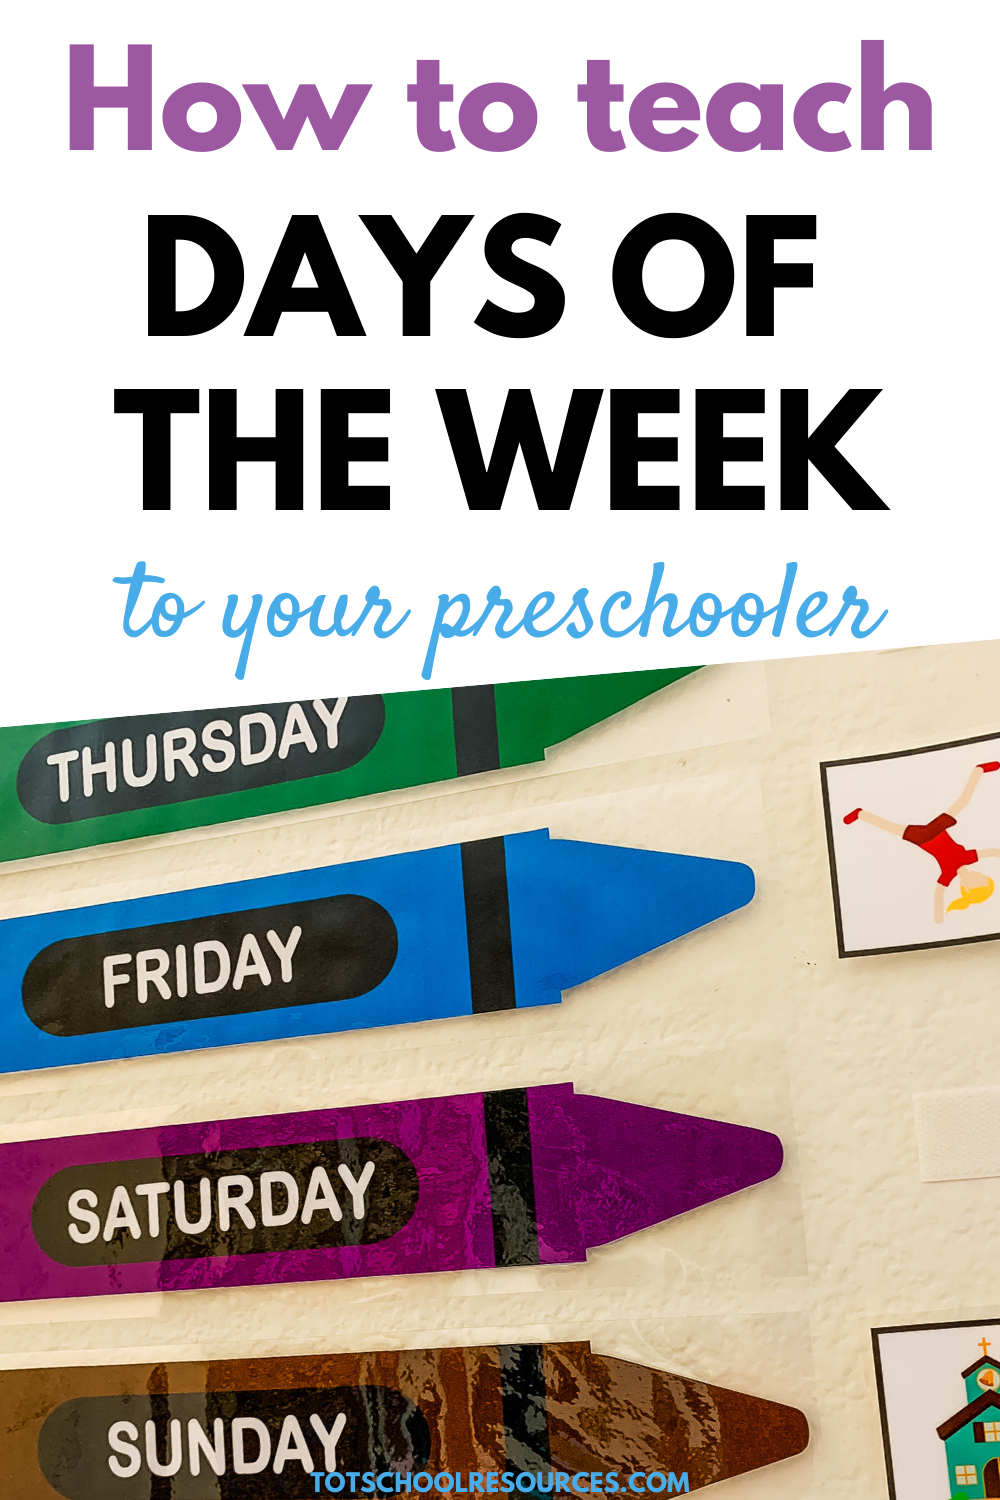 How To Teach Days Of The Week Kids Learning Activities Days Of The Week Activities Preschool Learning